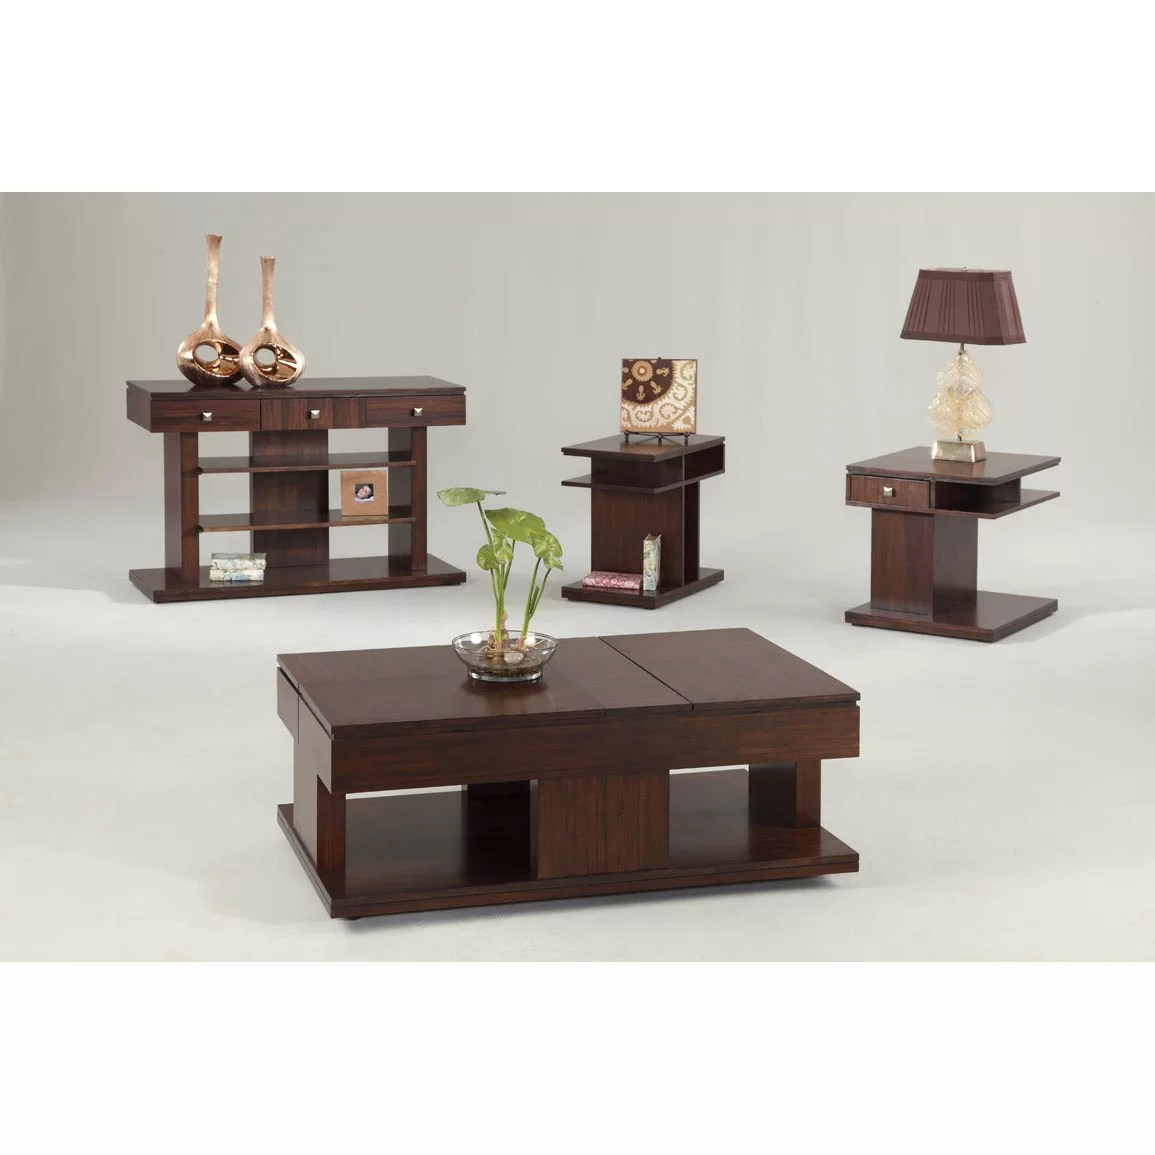 Double Lift Top Table Darby Home Co Dail Coffee Table With Double Lift Top